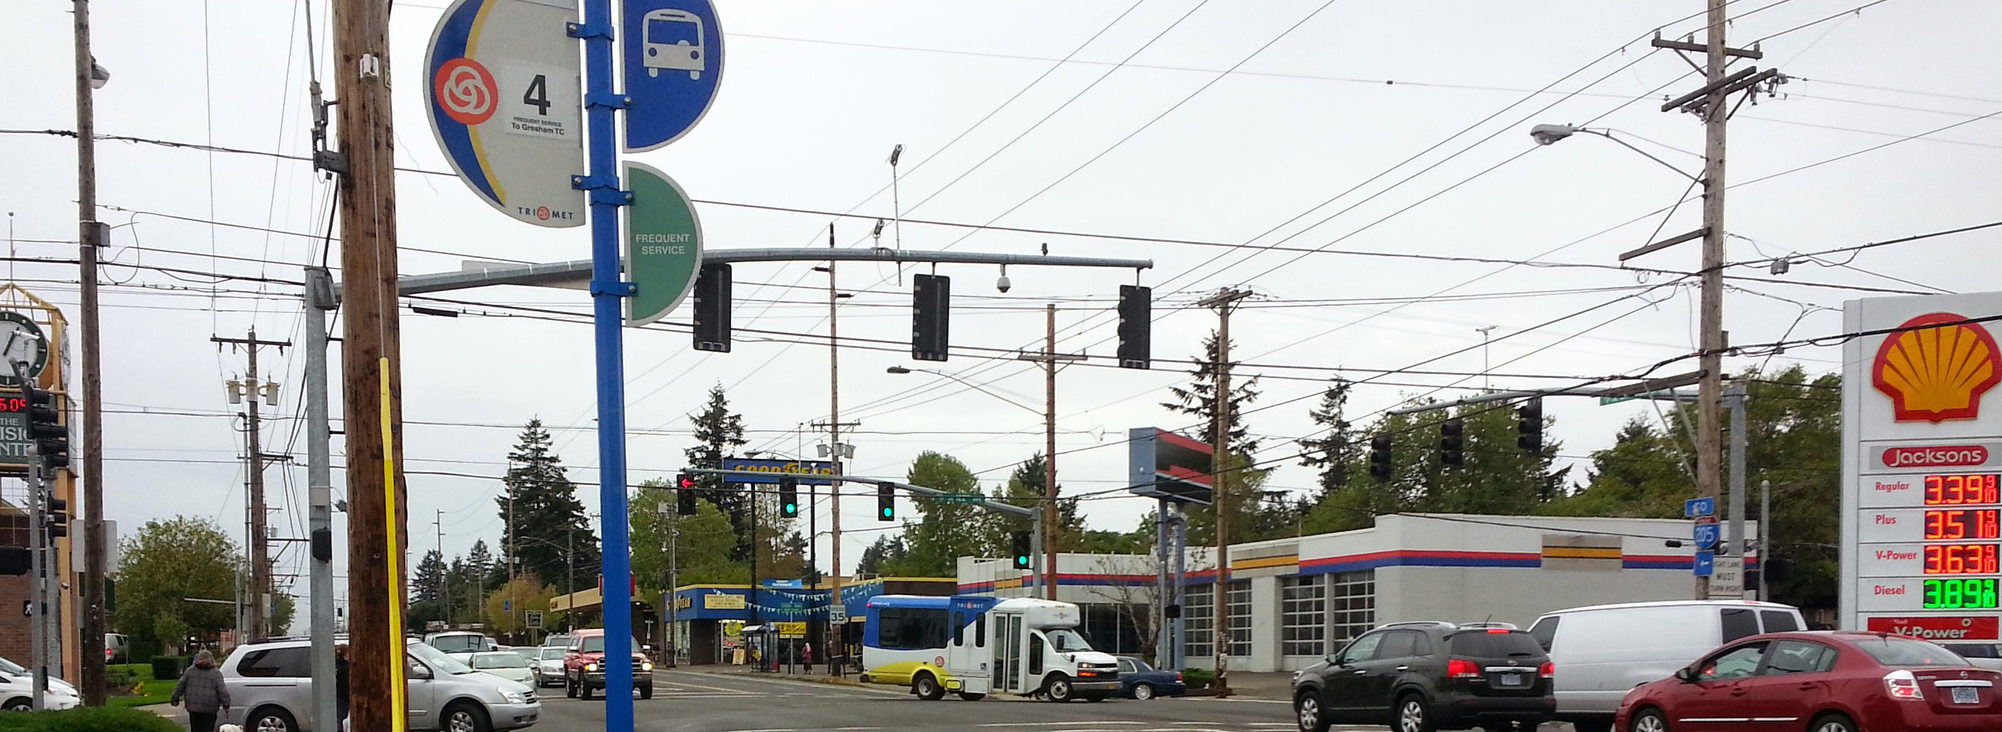 A 4-Division bus stop in Midway